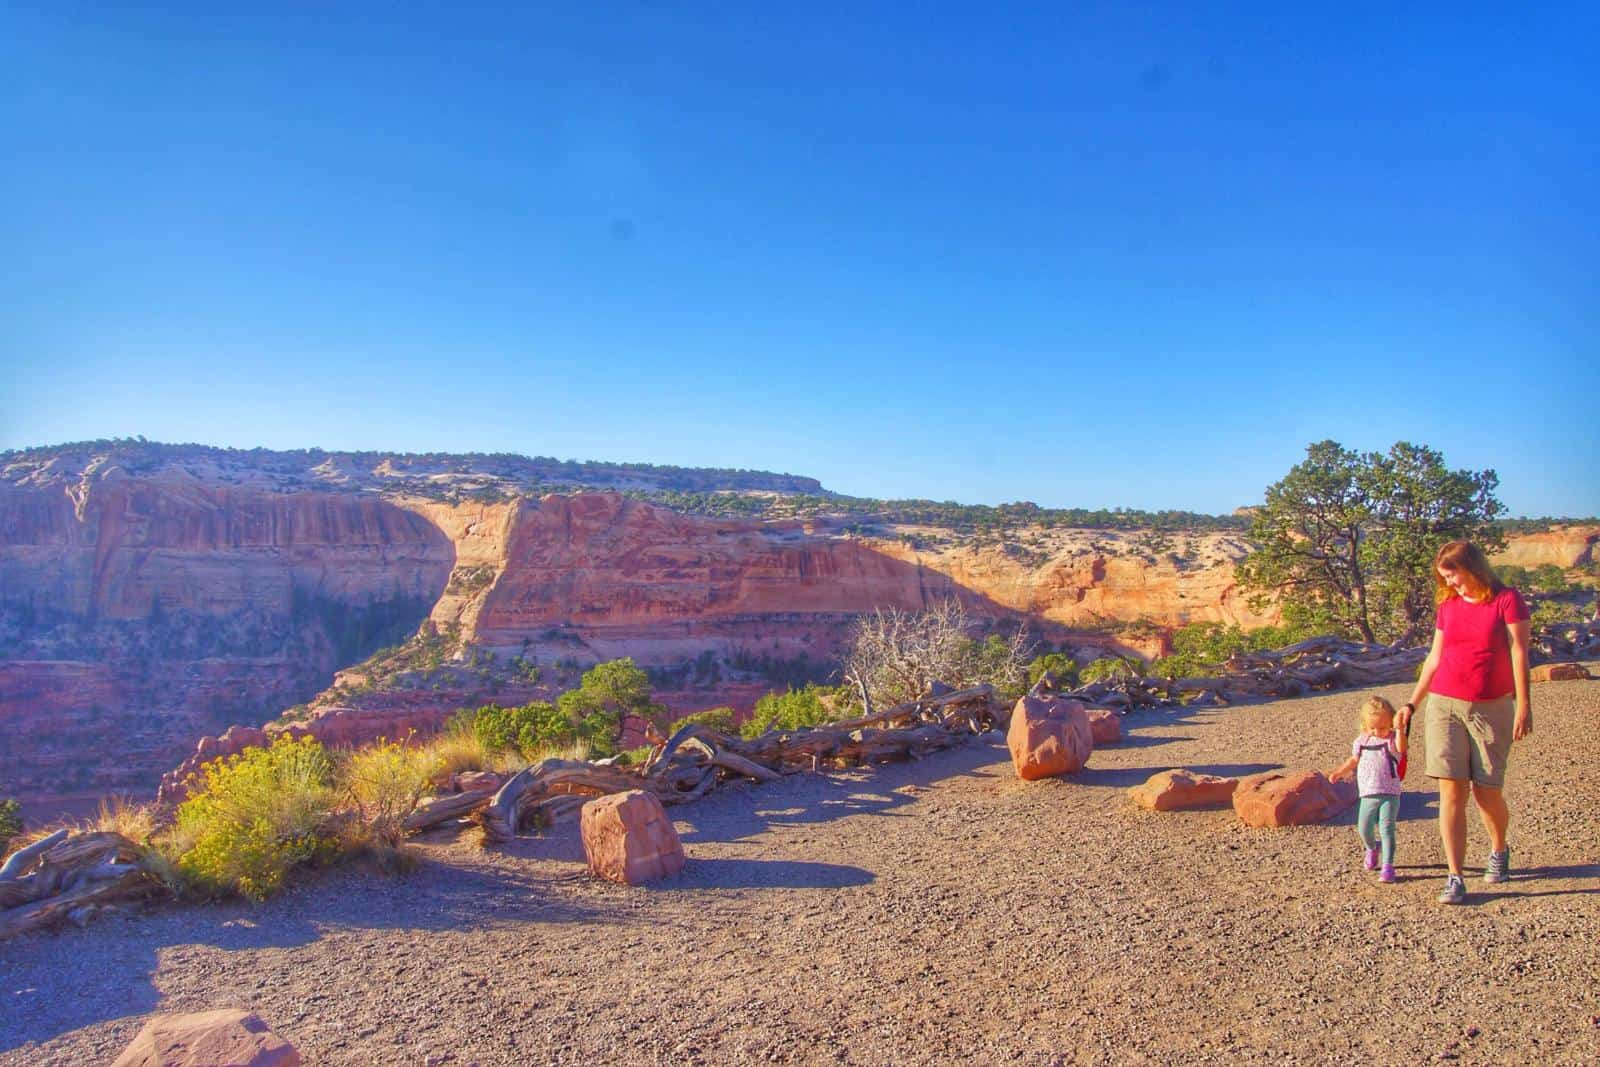 moab packing list - what to wear in arches national Park & Canyonlands